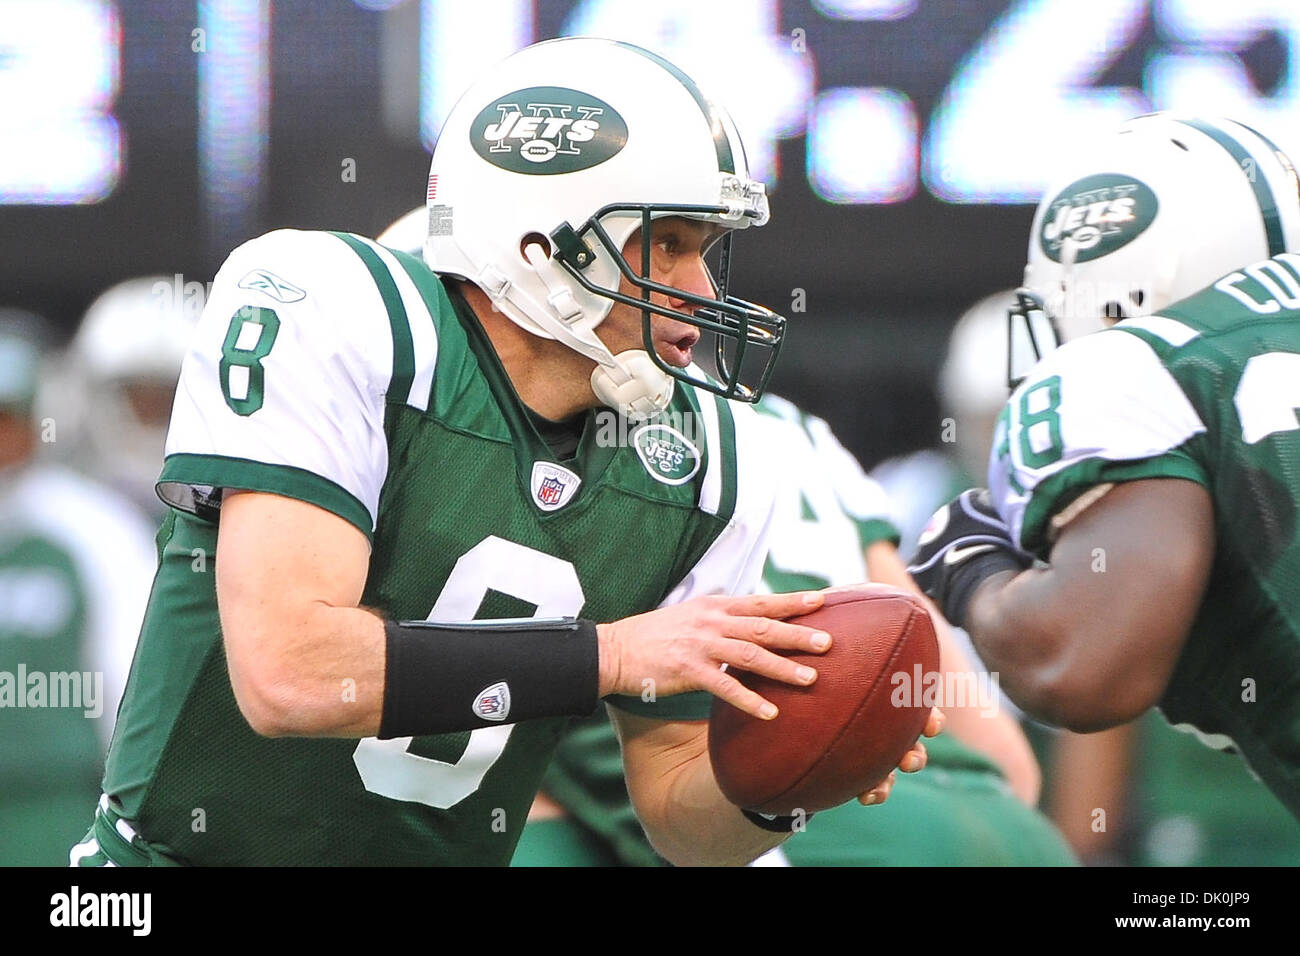 Jan. 2, 2011 - East Rutherford, New Jersey, U.S - New York Jets quarterback Mark Brunell (8) in action during the final regular season game at The New Meadowlands Stadium in East Rutherford New Jersey (Credit Image: © Brooks Von Arx/Southcreek Global/ZUMAPRESS.com) - Stock Image